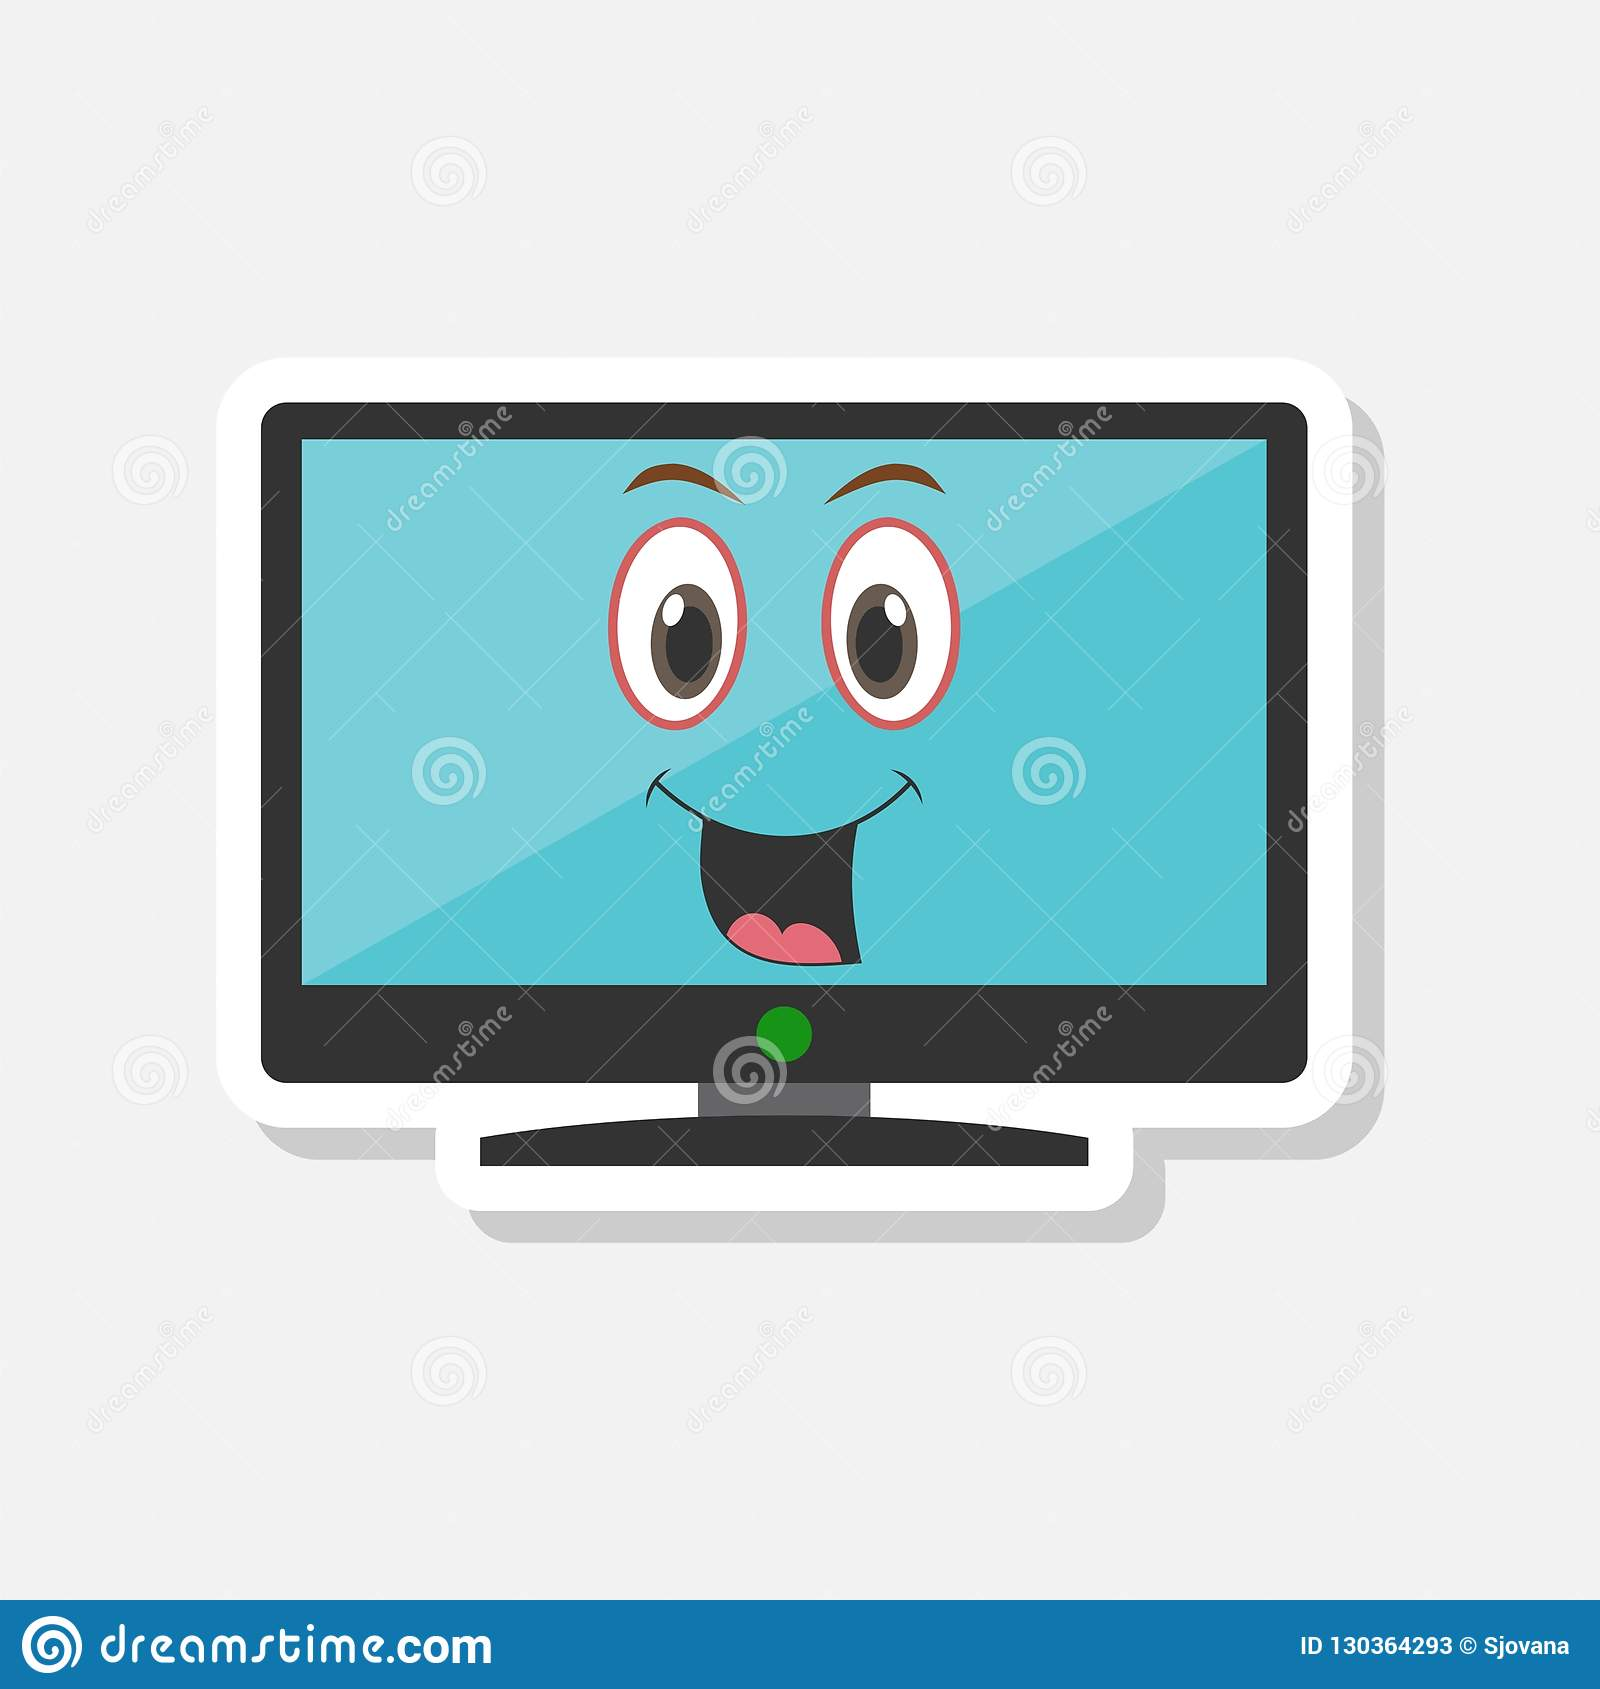 Cartoon Monitor Sticker With Smiley Face Stock Illustration